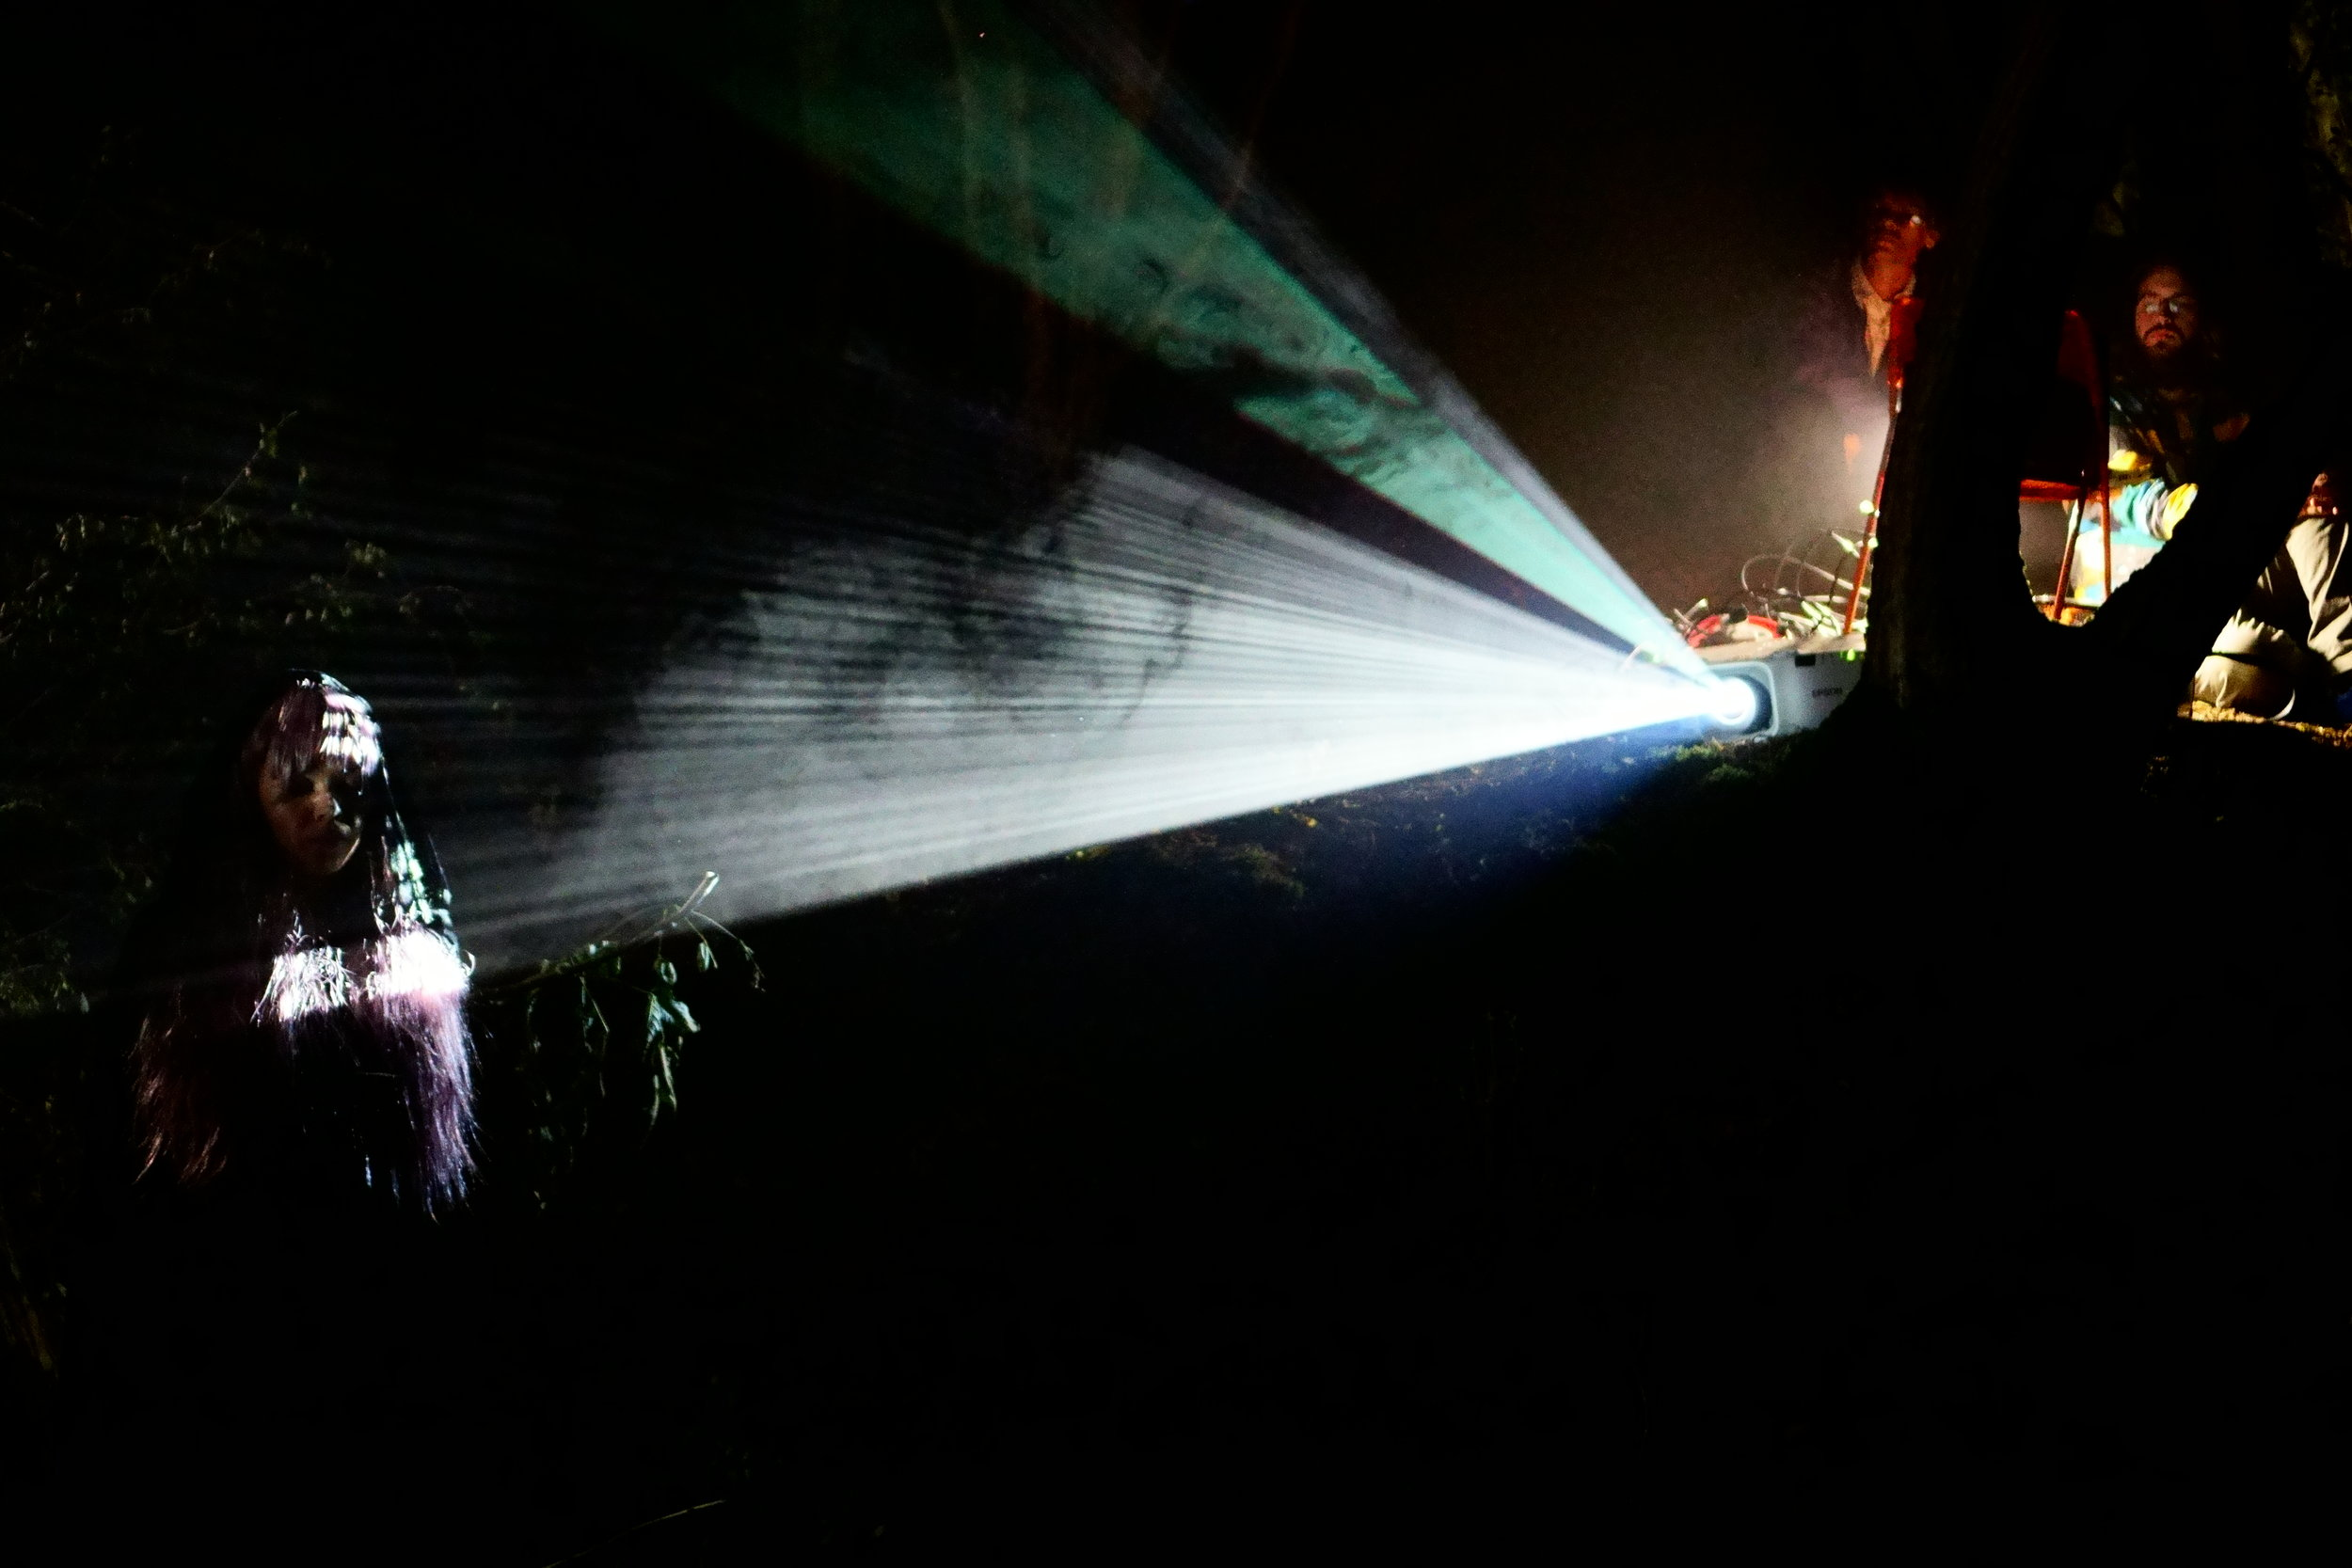 projection-mapping-forest